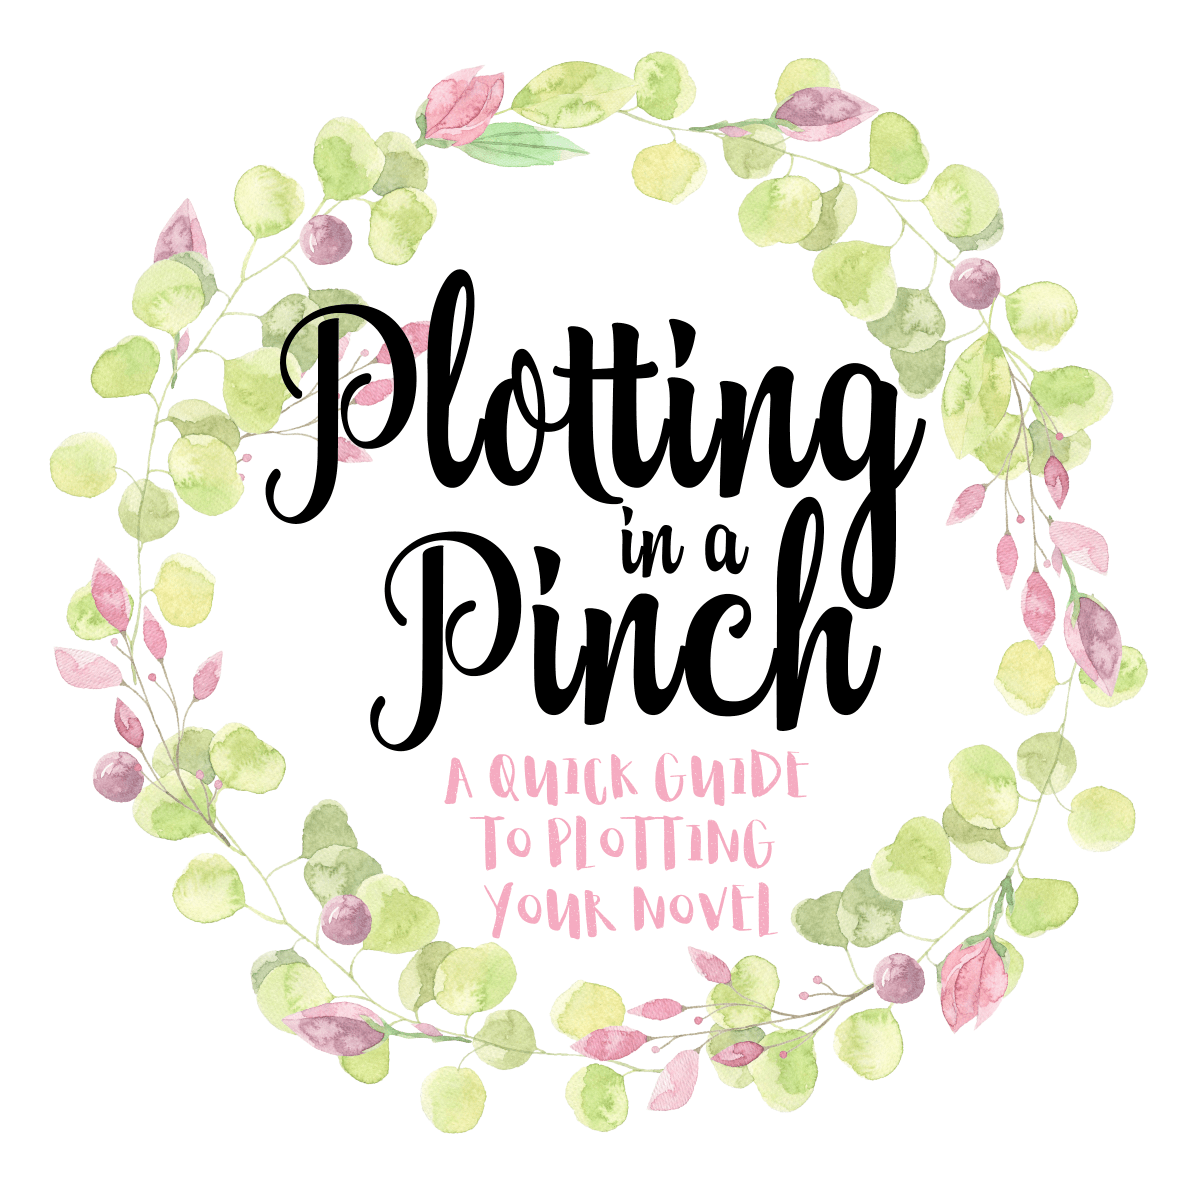 Plotting in a Pinch: A Quick Guide to Plotting Your Novel